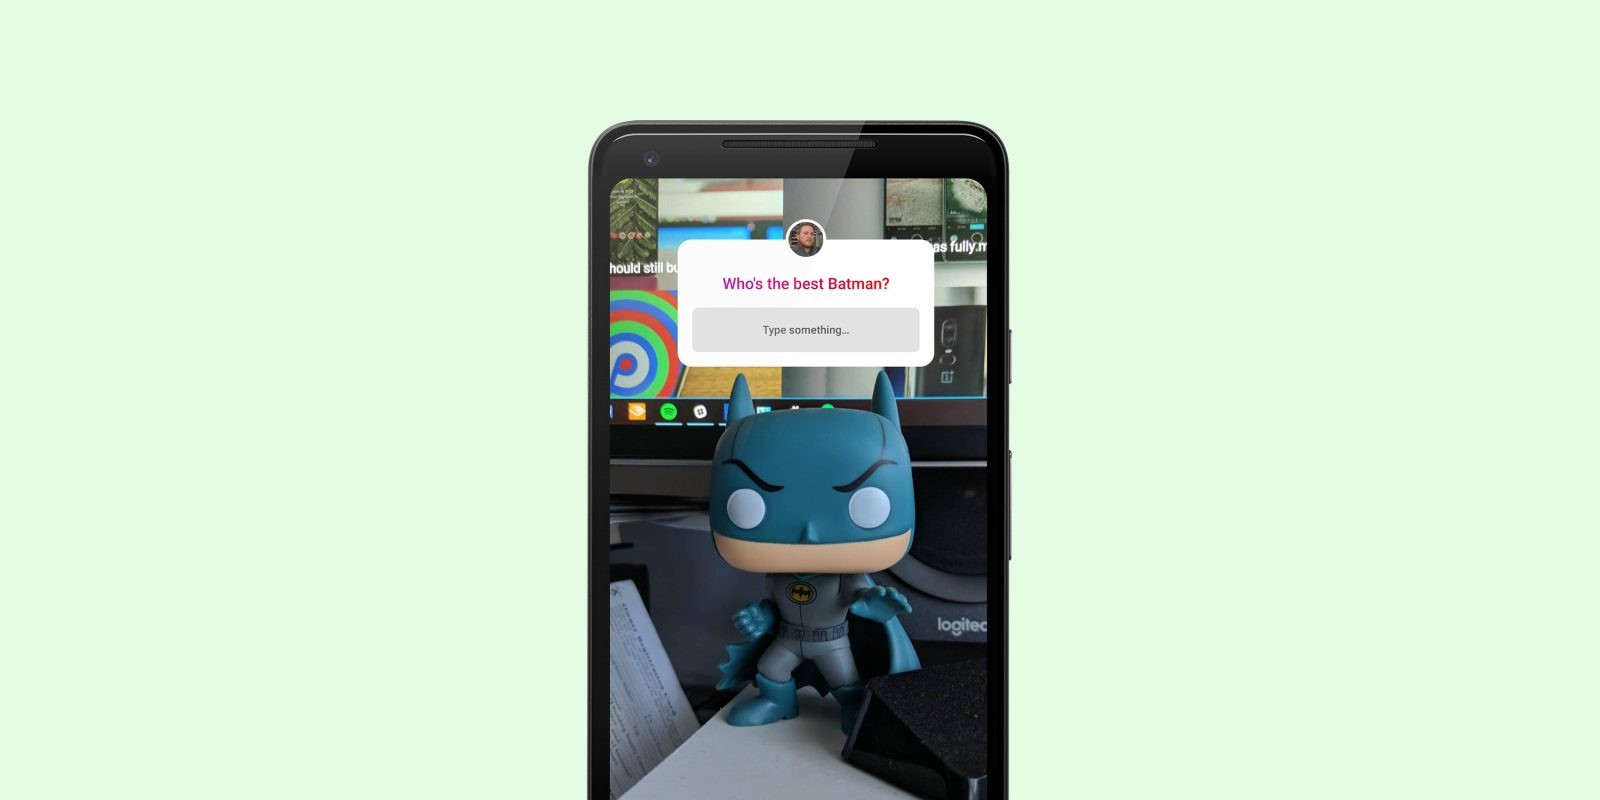 How to use the Instagram Story Question Sticker on Android